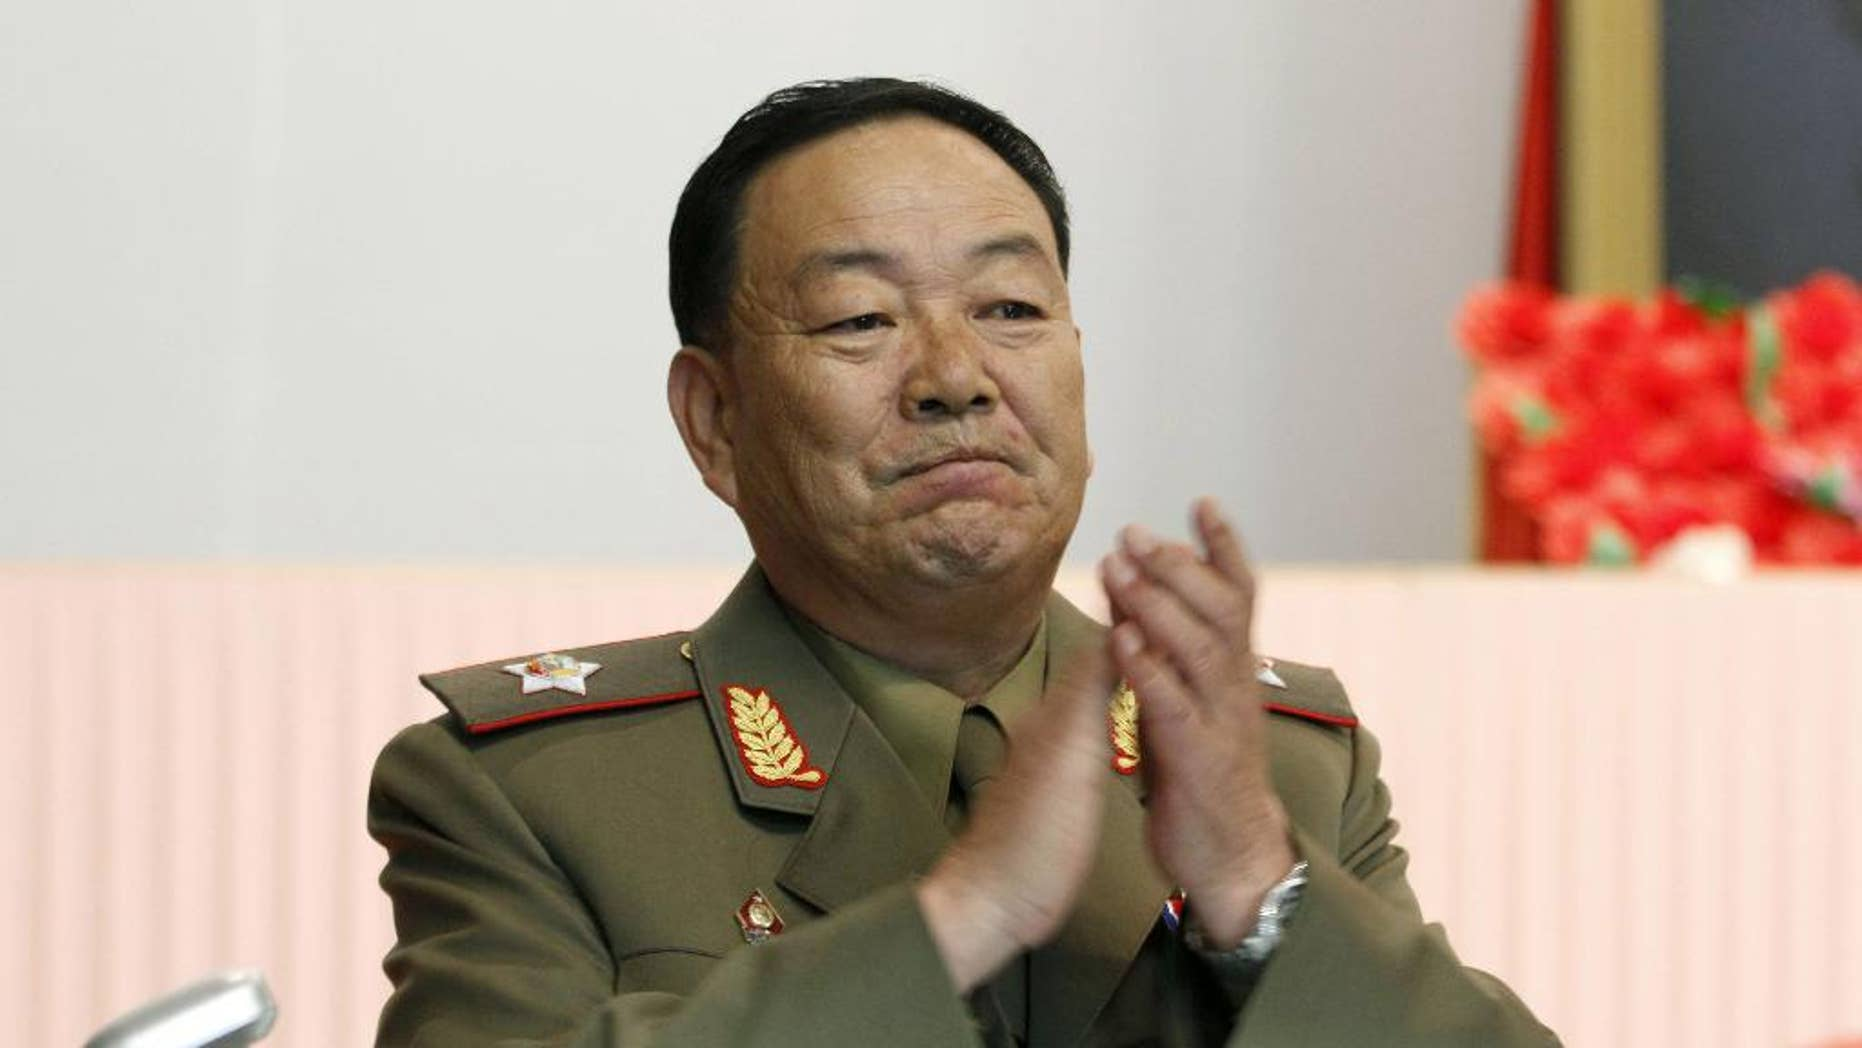 FILE - In this July 18, 2012, file photo, then Vice Marshal Hyon Yong Chol applauds during a meeting in Pyongyang, North Korea. North Korean leader Kim Jong Un ordered his defense chief Hyon Yong Chol executed with an anti-aircraft gun for complaining about the young ruler, talking back to him and sleeping during a meeting presided over by Kim, South Korea's spy agency told lawmakers Wednesday, May 13, 2015, citing what it called credible information. (AP Photo/Jon Chol Jin, File)